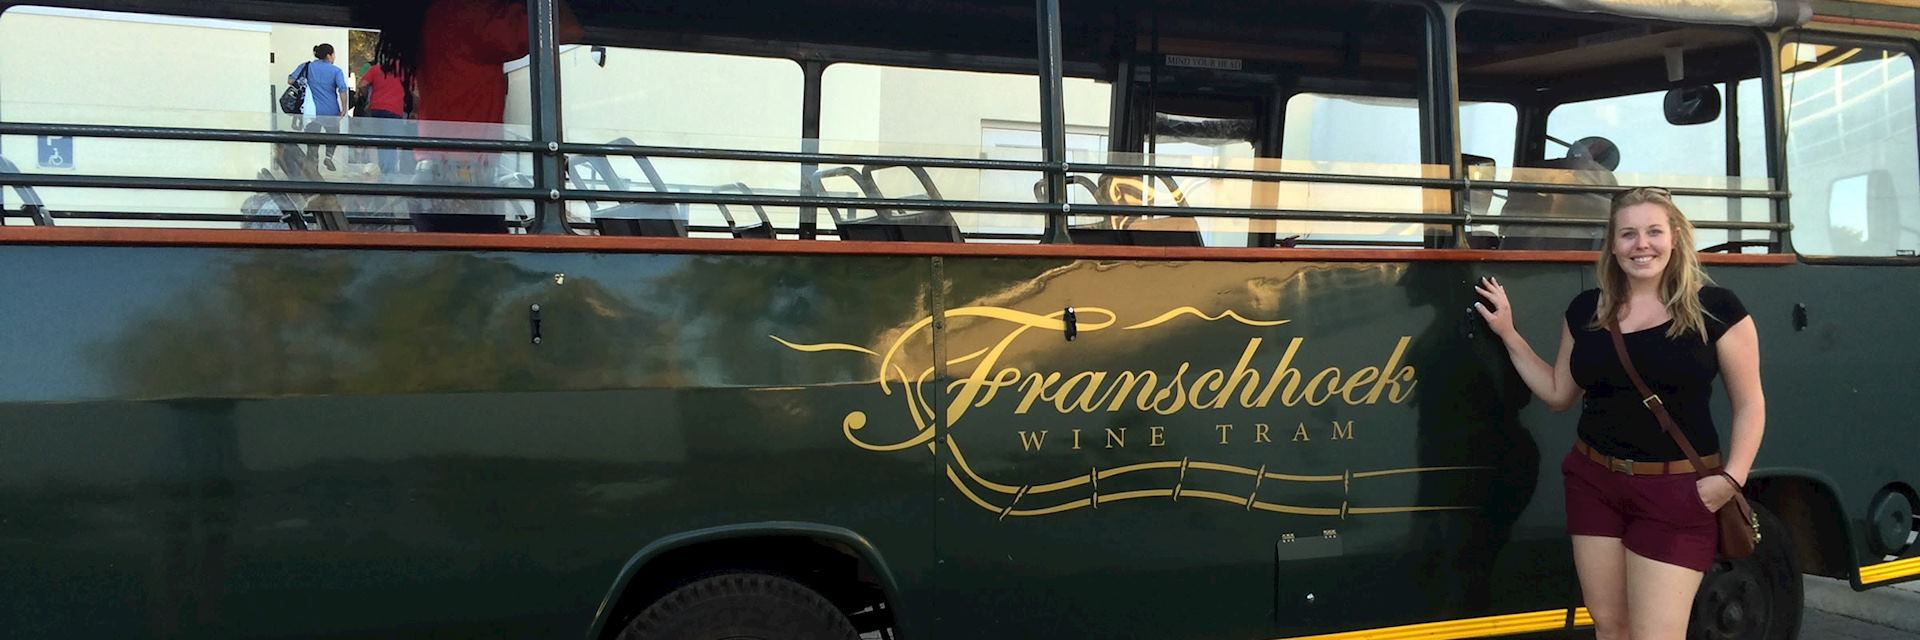 Sophie enjoying the Fanschhoek Wine Tram tour, South Africa